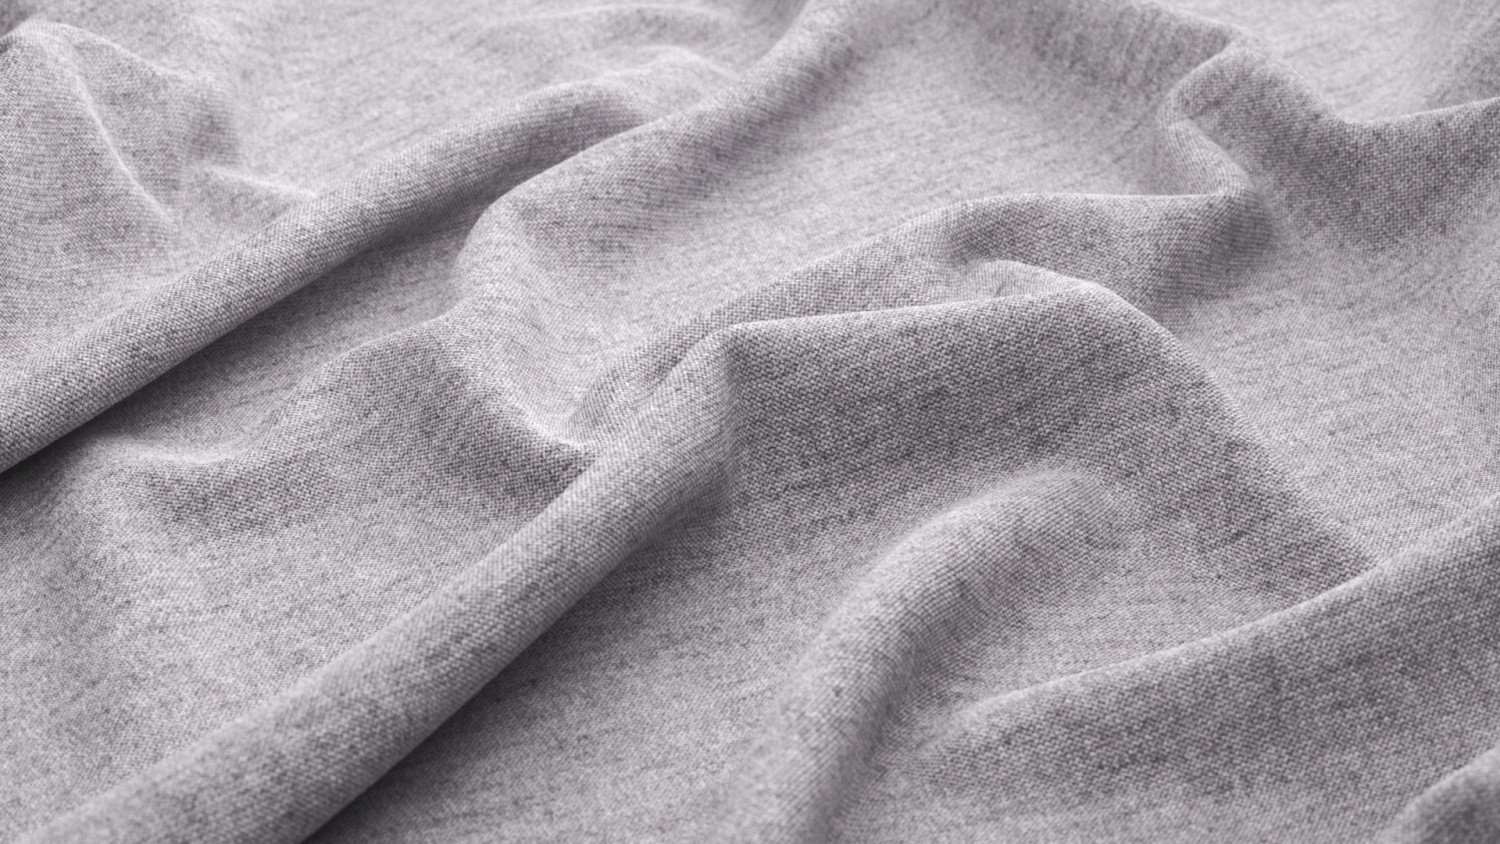 Double Knit Fabric texture